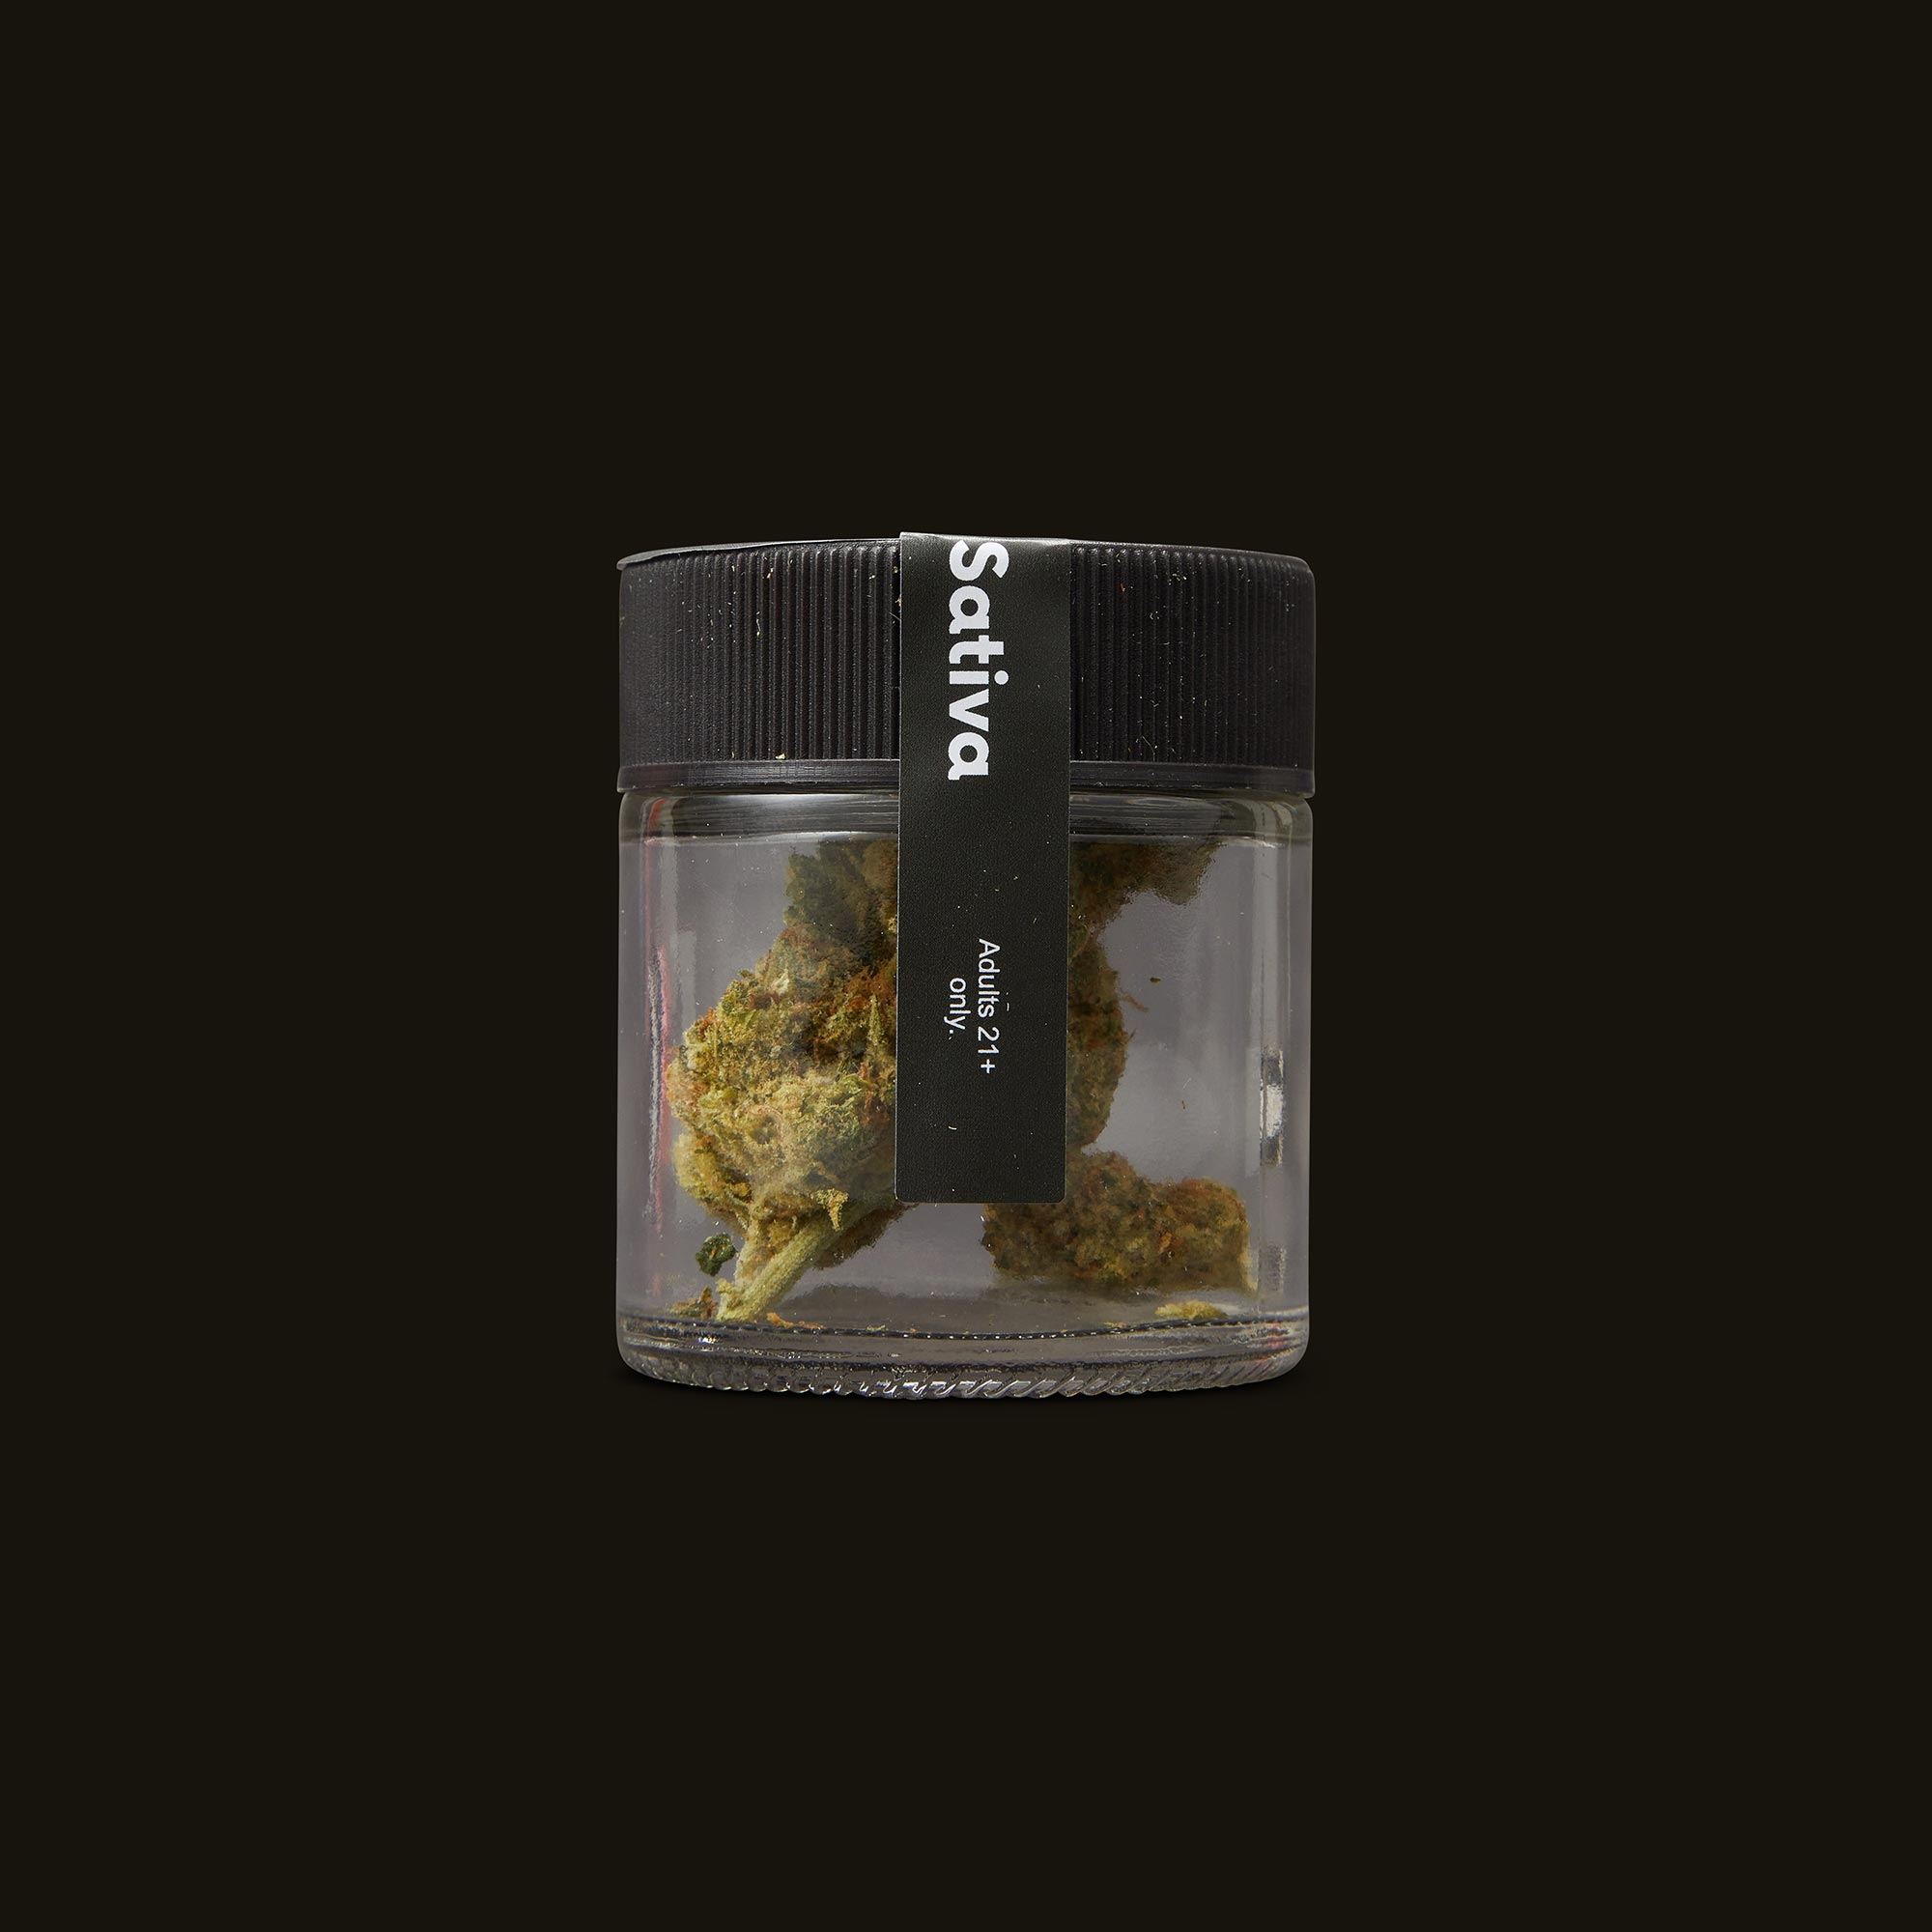 Tyson Ranch Sour Diesel Jar